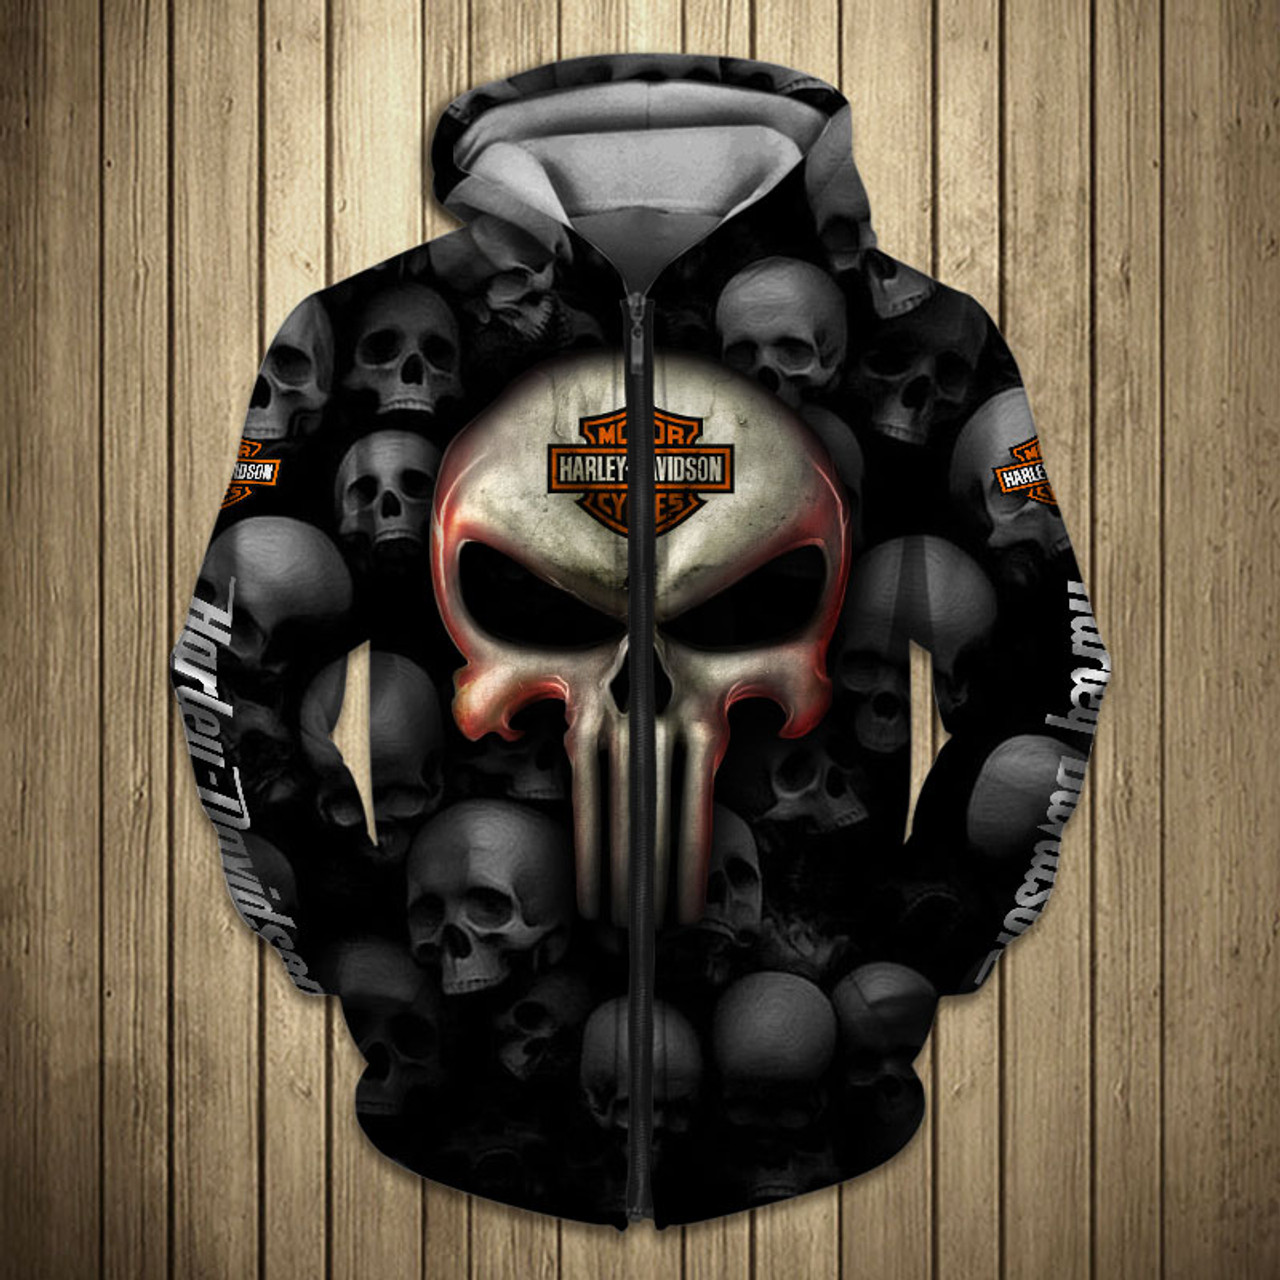 **(OFFICIAL-HARLEY-DAVIDSON-MOTORCYCLE-ZIPPERED-HOODIES & BIG-HARLEY-PUNISHER-SKULL/OFFICIAL-CUSTOM-HARLEY-3D-LOGOS & OFFICIAL-CLASSIC-HARLEY-COLORS/CUSTOM-3D-GRAPHIC-PRINTED-DESIGN/WARM-PREMIUM-FASHION-HARLEY-RIDING-BIKER-ZIPPERED-HOODIES)**